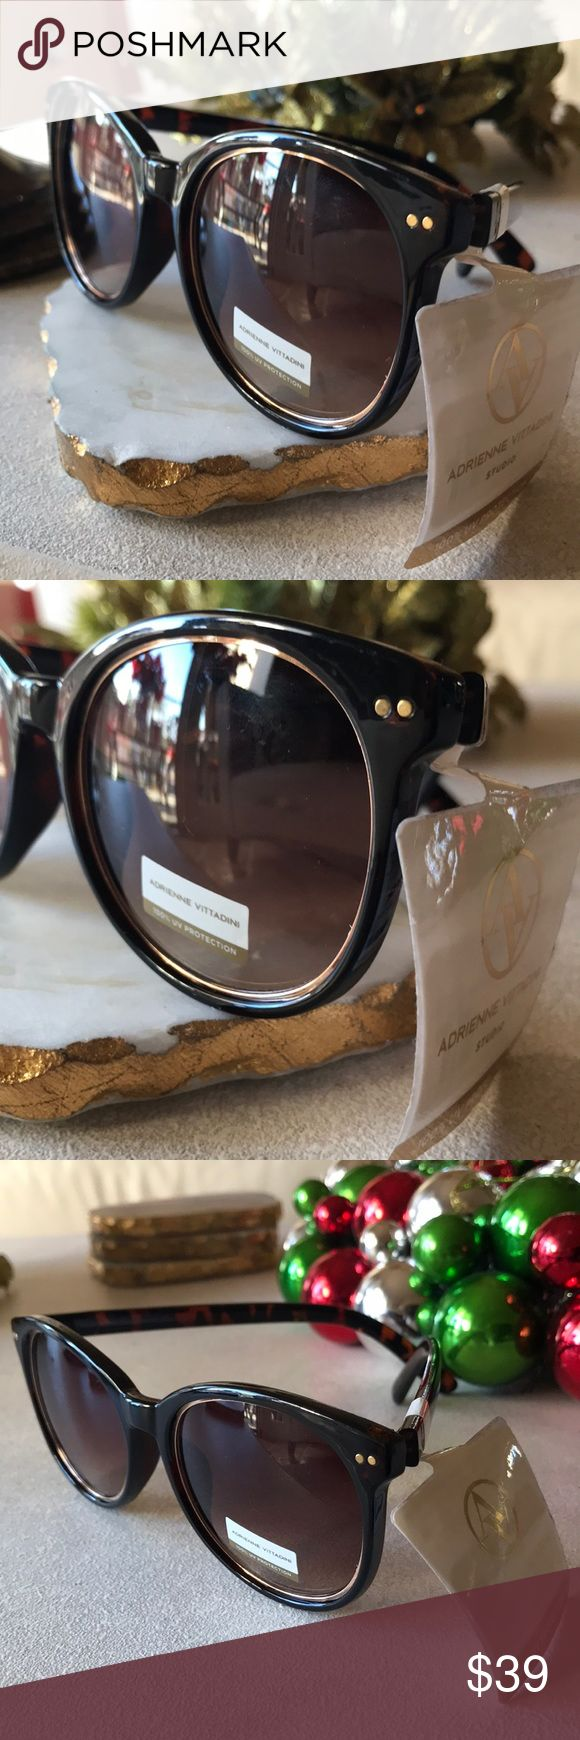 Sunglasses -Adrienne Vittadini 100% UV Protection Classy Horn Rimmed Sunglasses by Adrienne Vittadini. These are 100% UV Protection shades with a very elegant gold rimmed inlay around the rim. SIMPLY BEAUTIFUL NWT Adrienne Vittadini Accessories Sunglasses